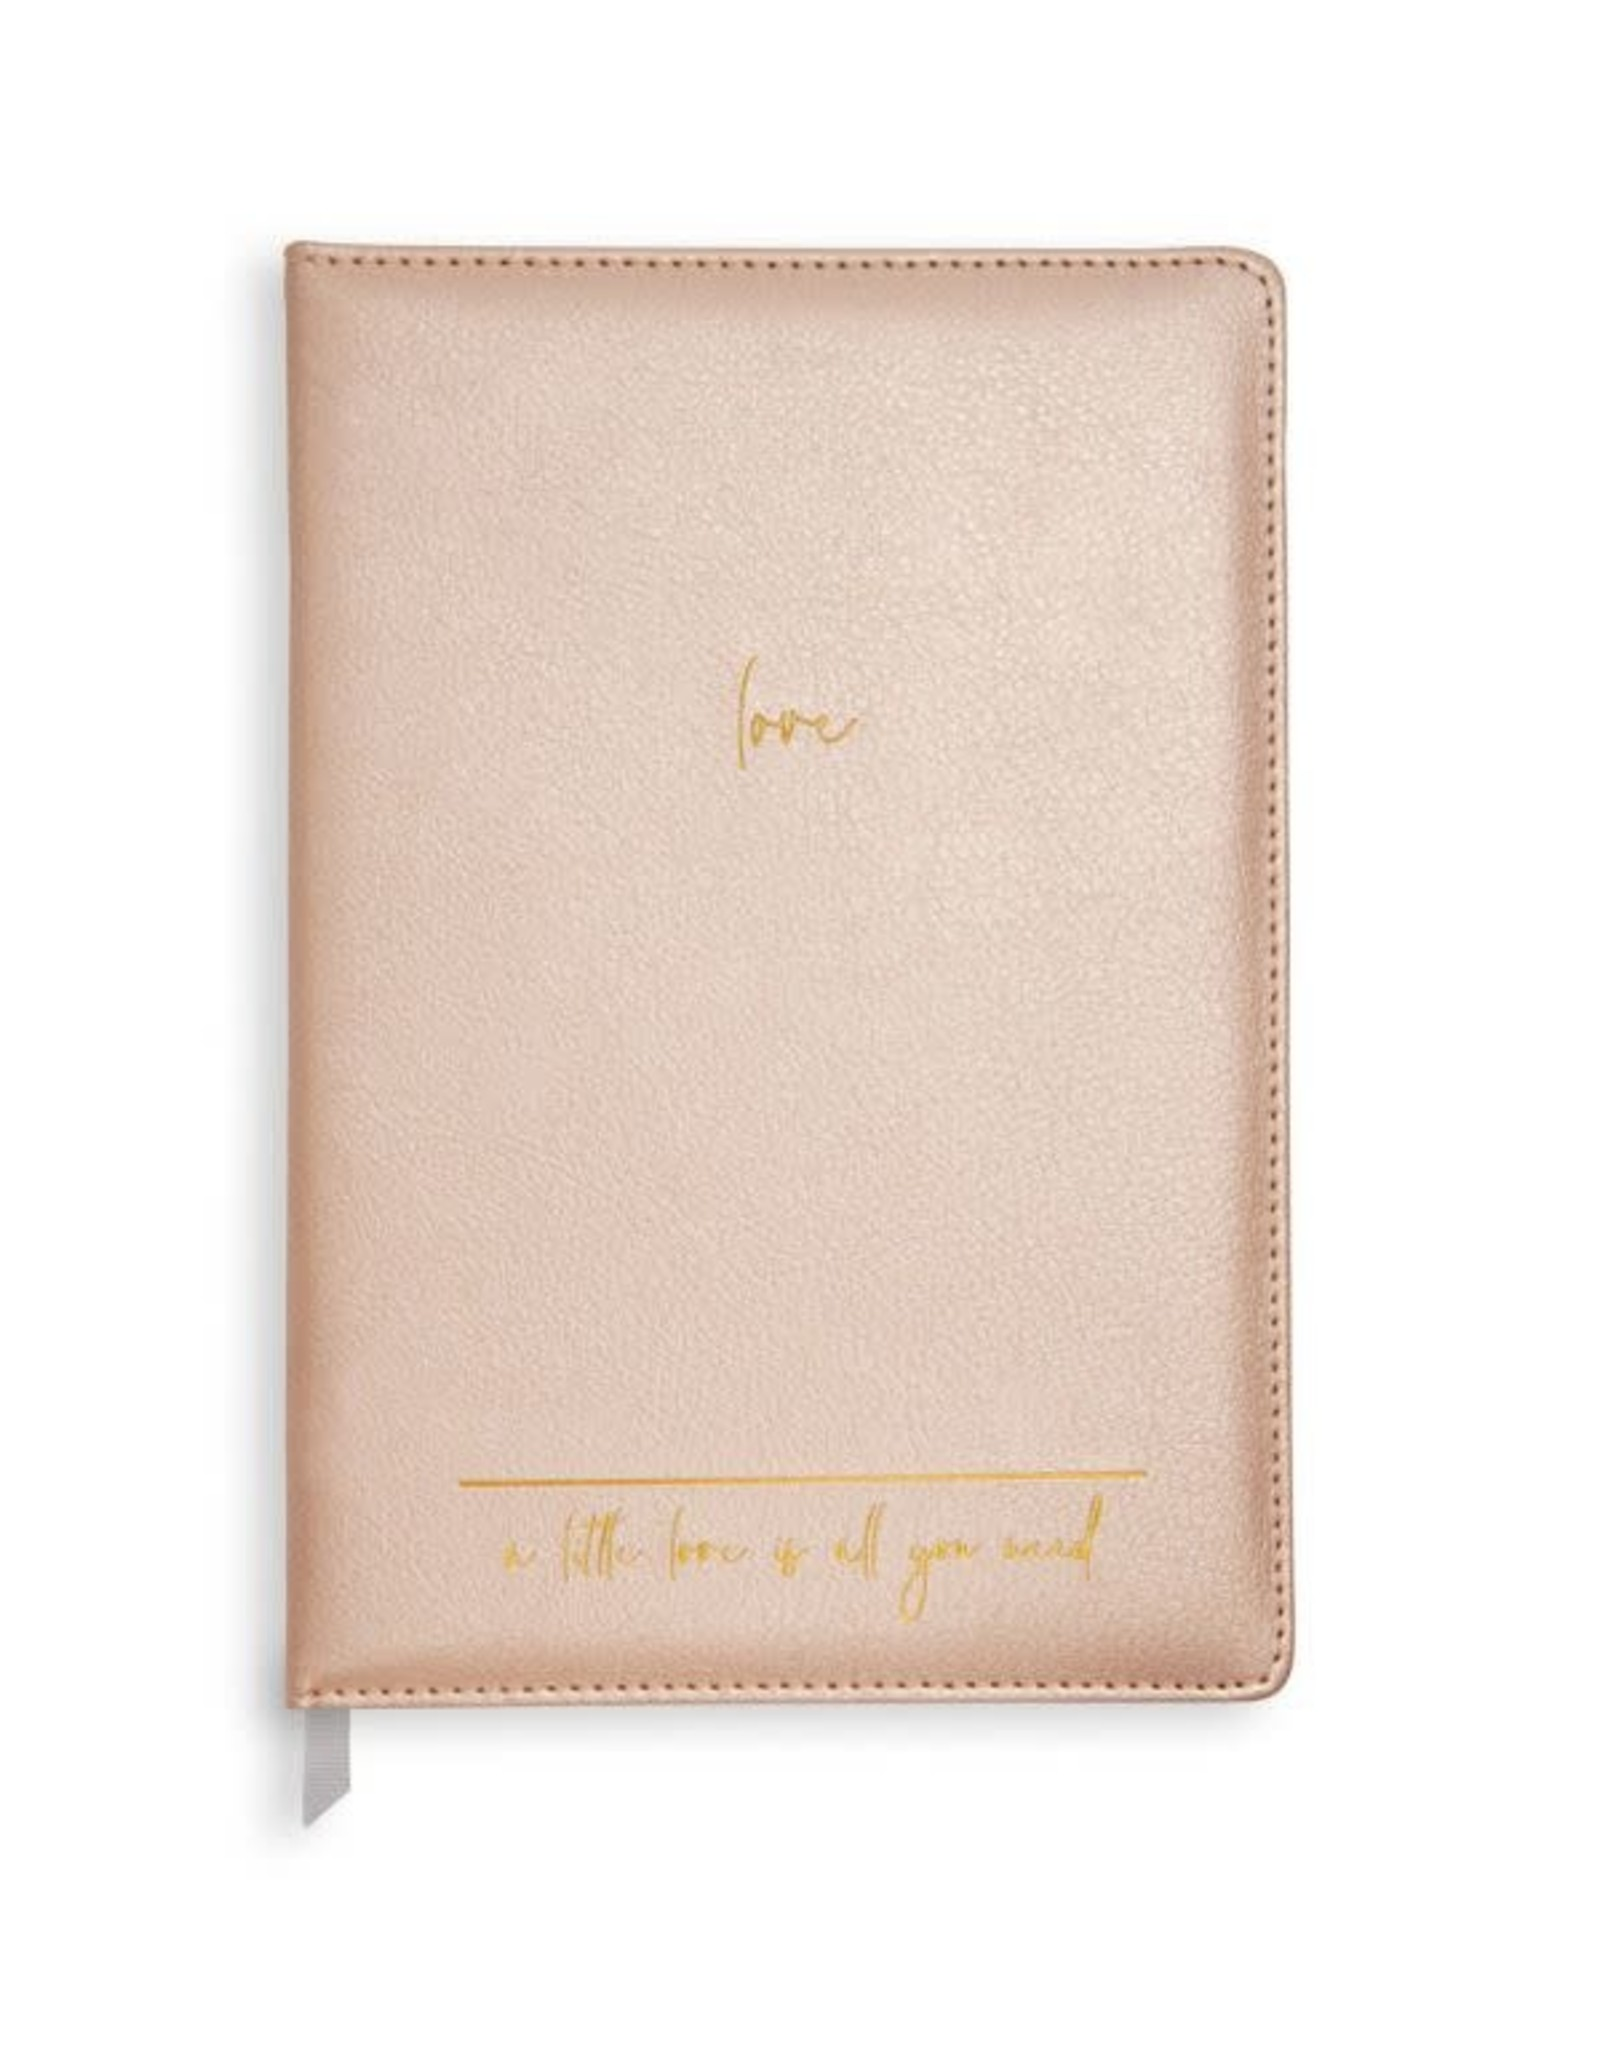 Katie Loxton Notebook A Little Love is all You Need Pink